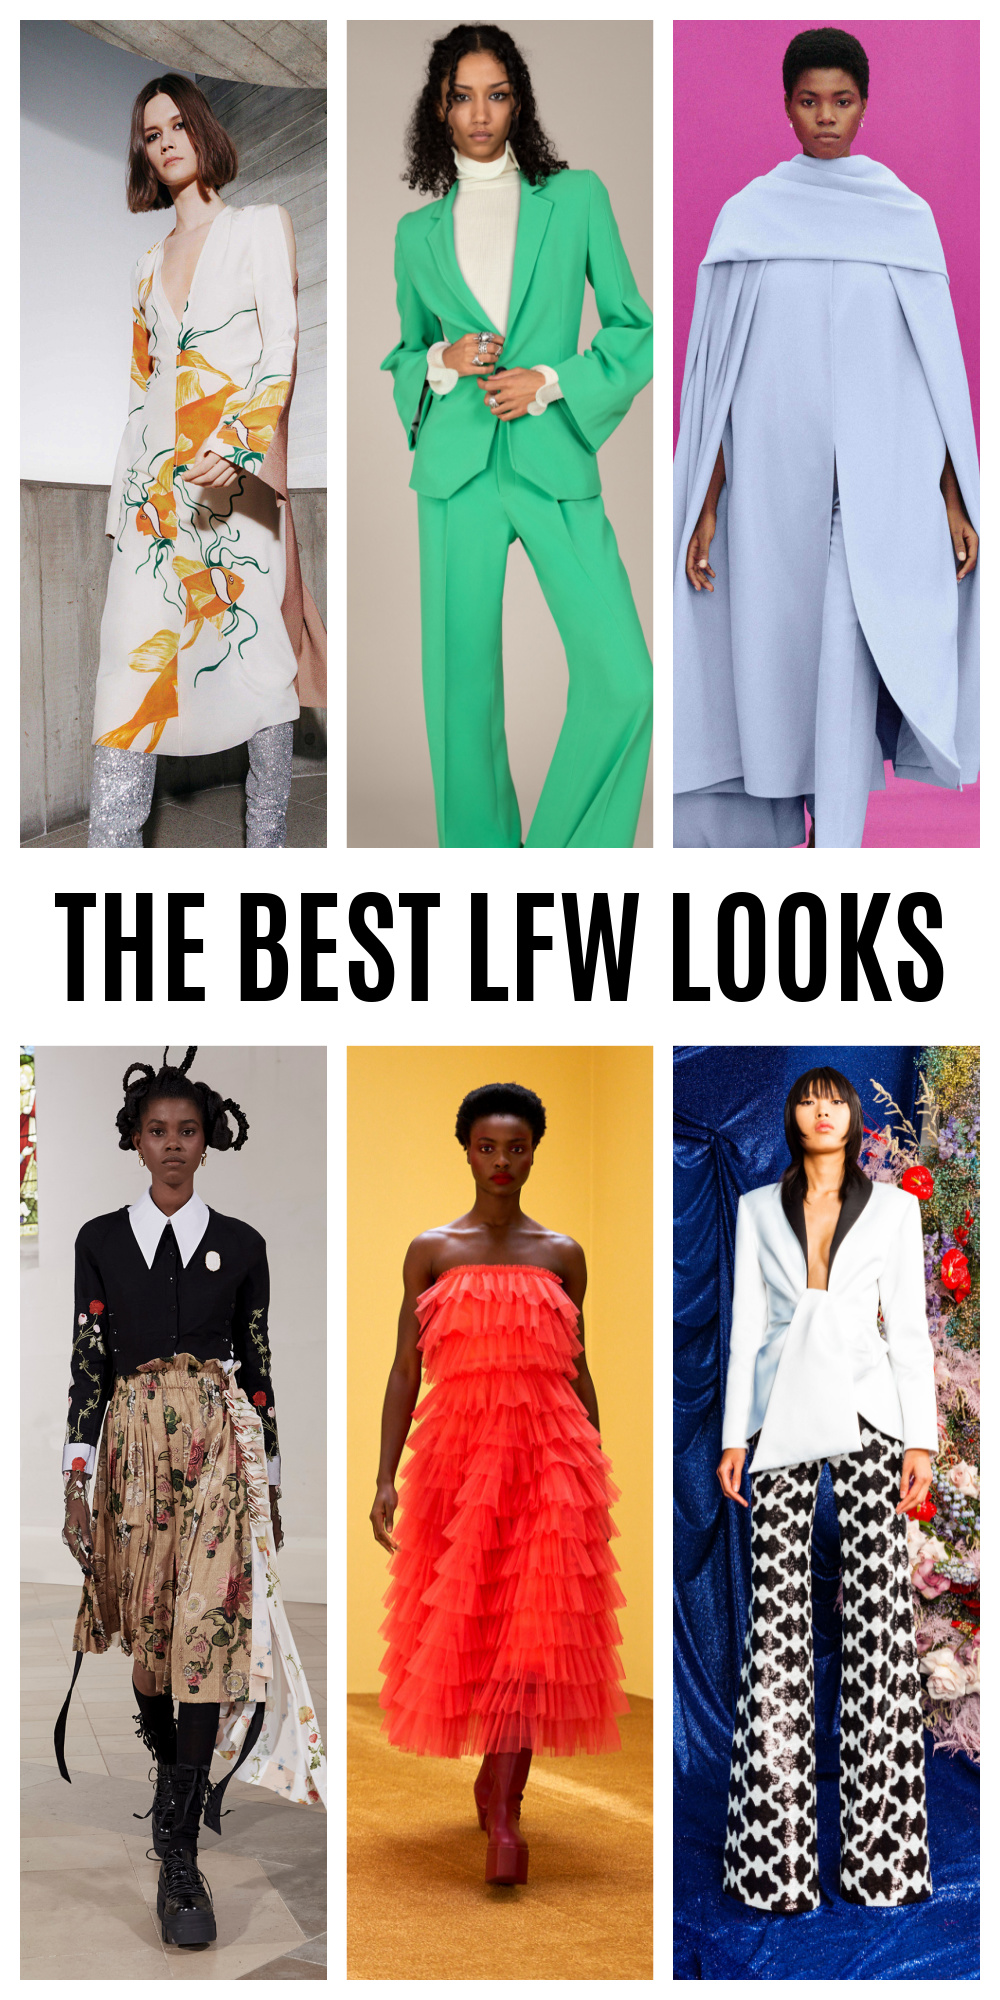 From Roland Mouret to Molly Goddard, meet the best LFW looks of the Fall 2021 season #fashionblog #fashionable #womensfashion